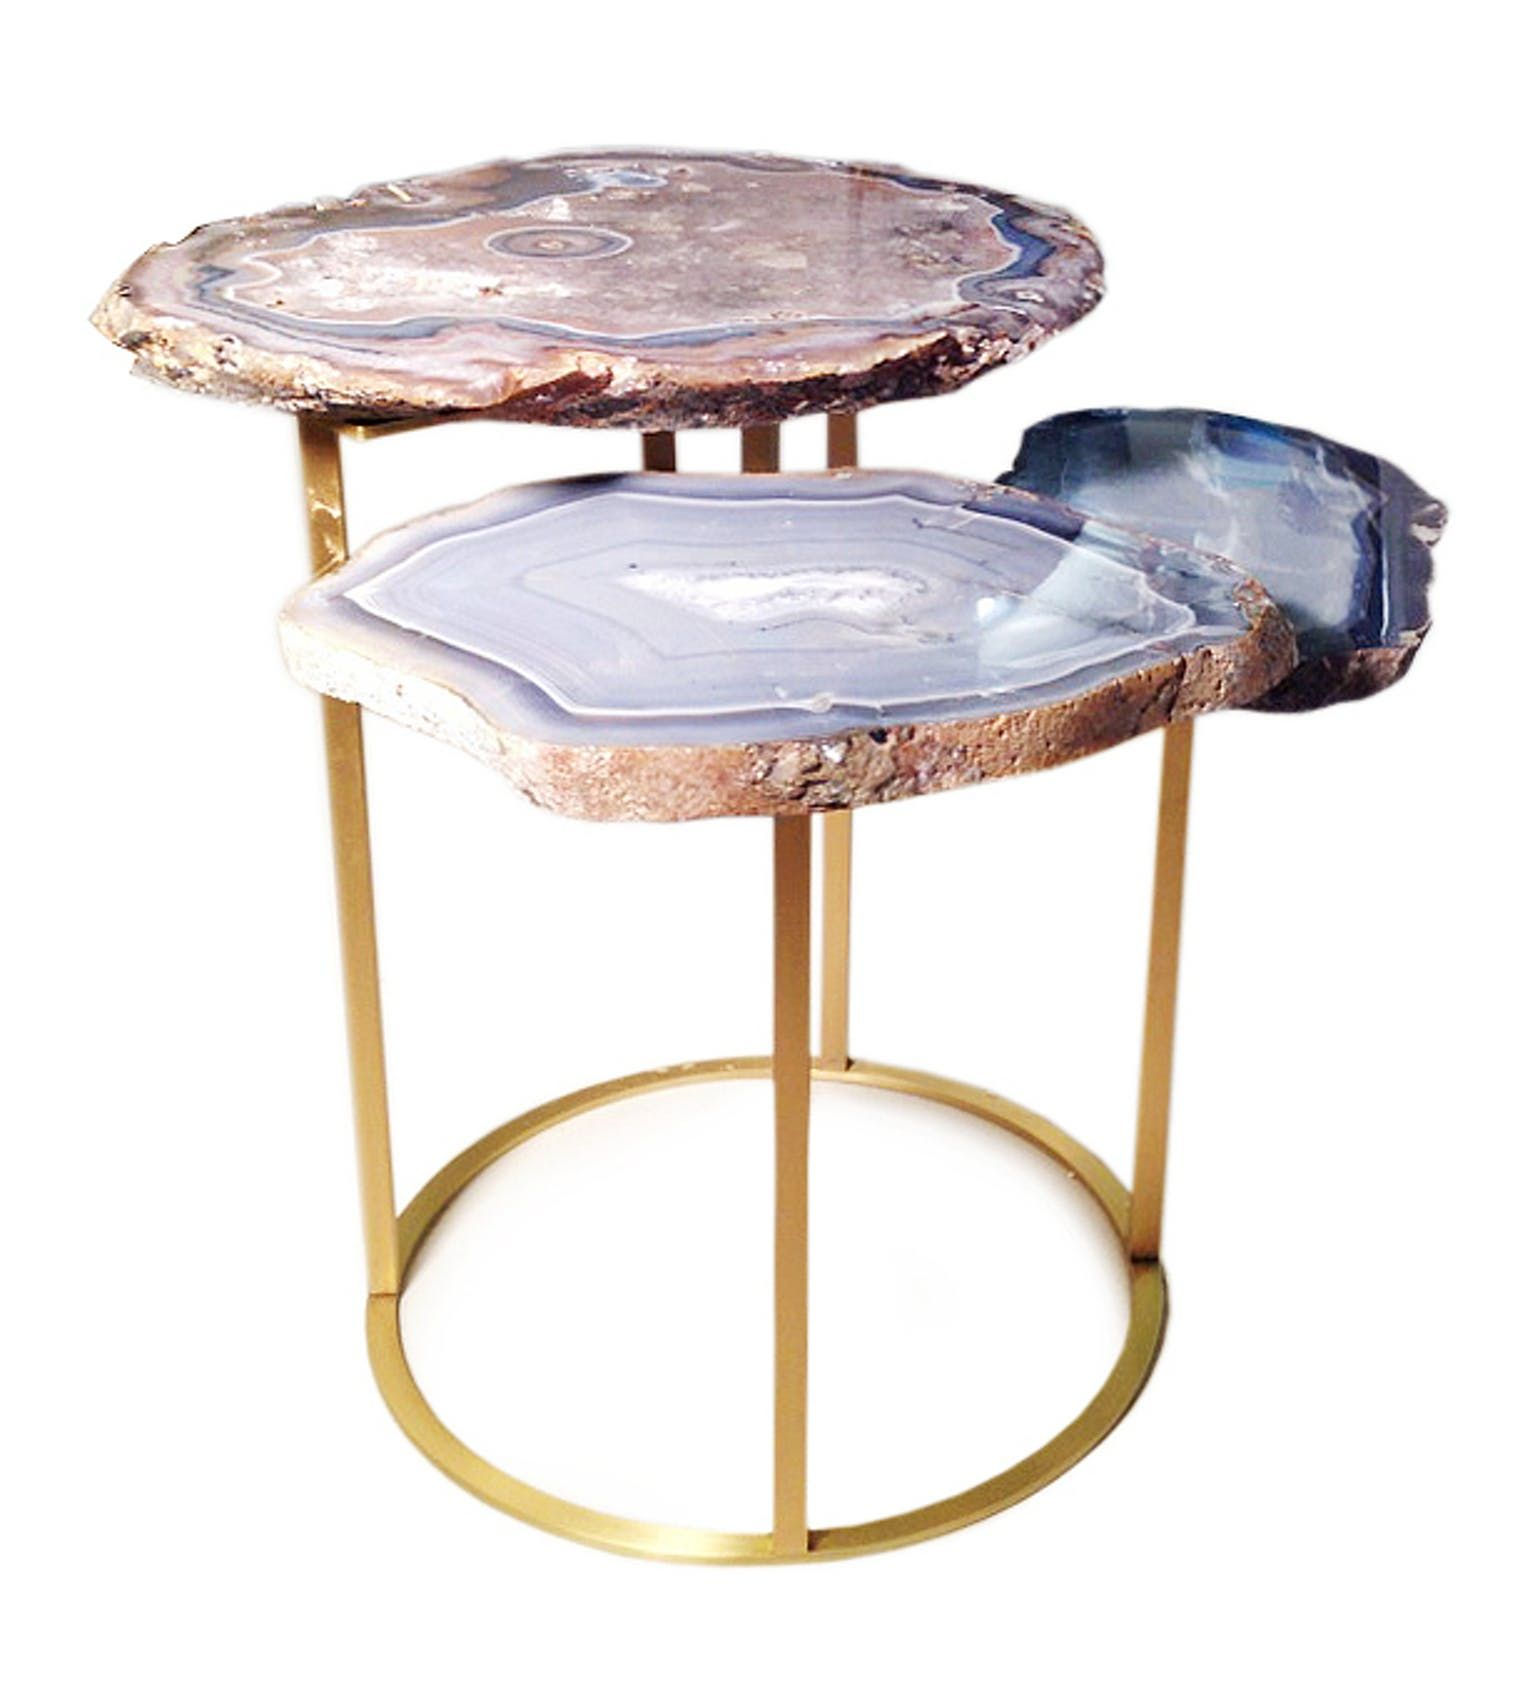 Quinn Three Tier Agate Coffee Table Contemporary Metal Stone